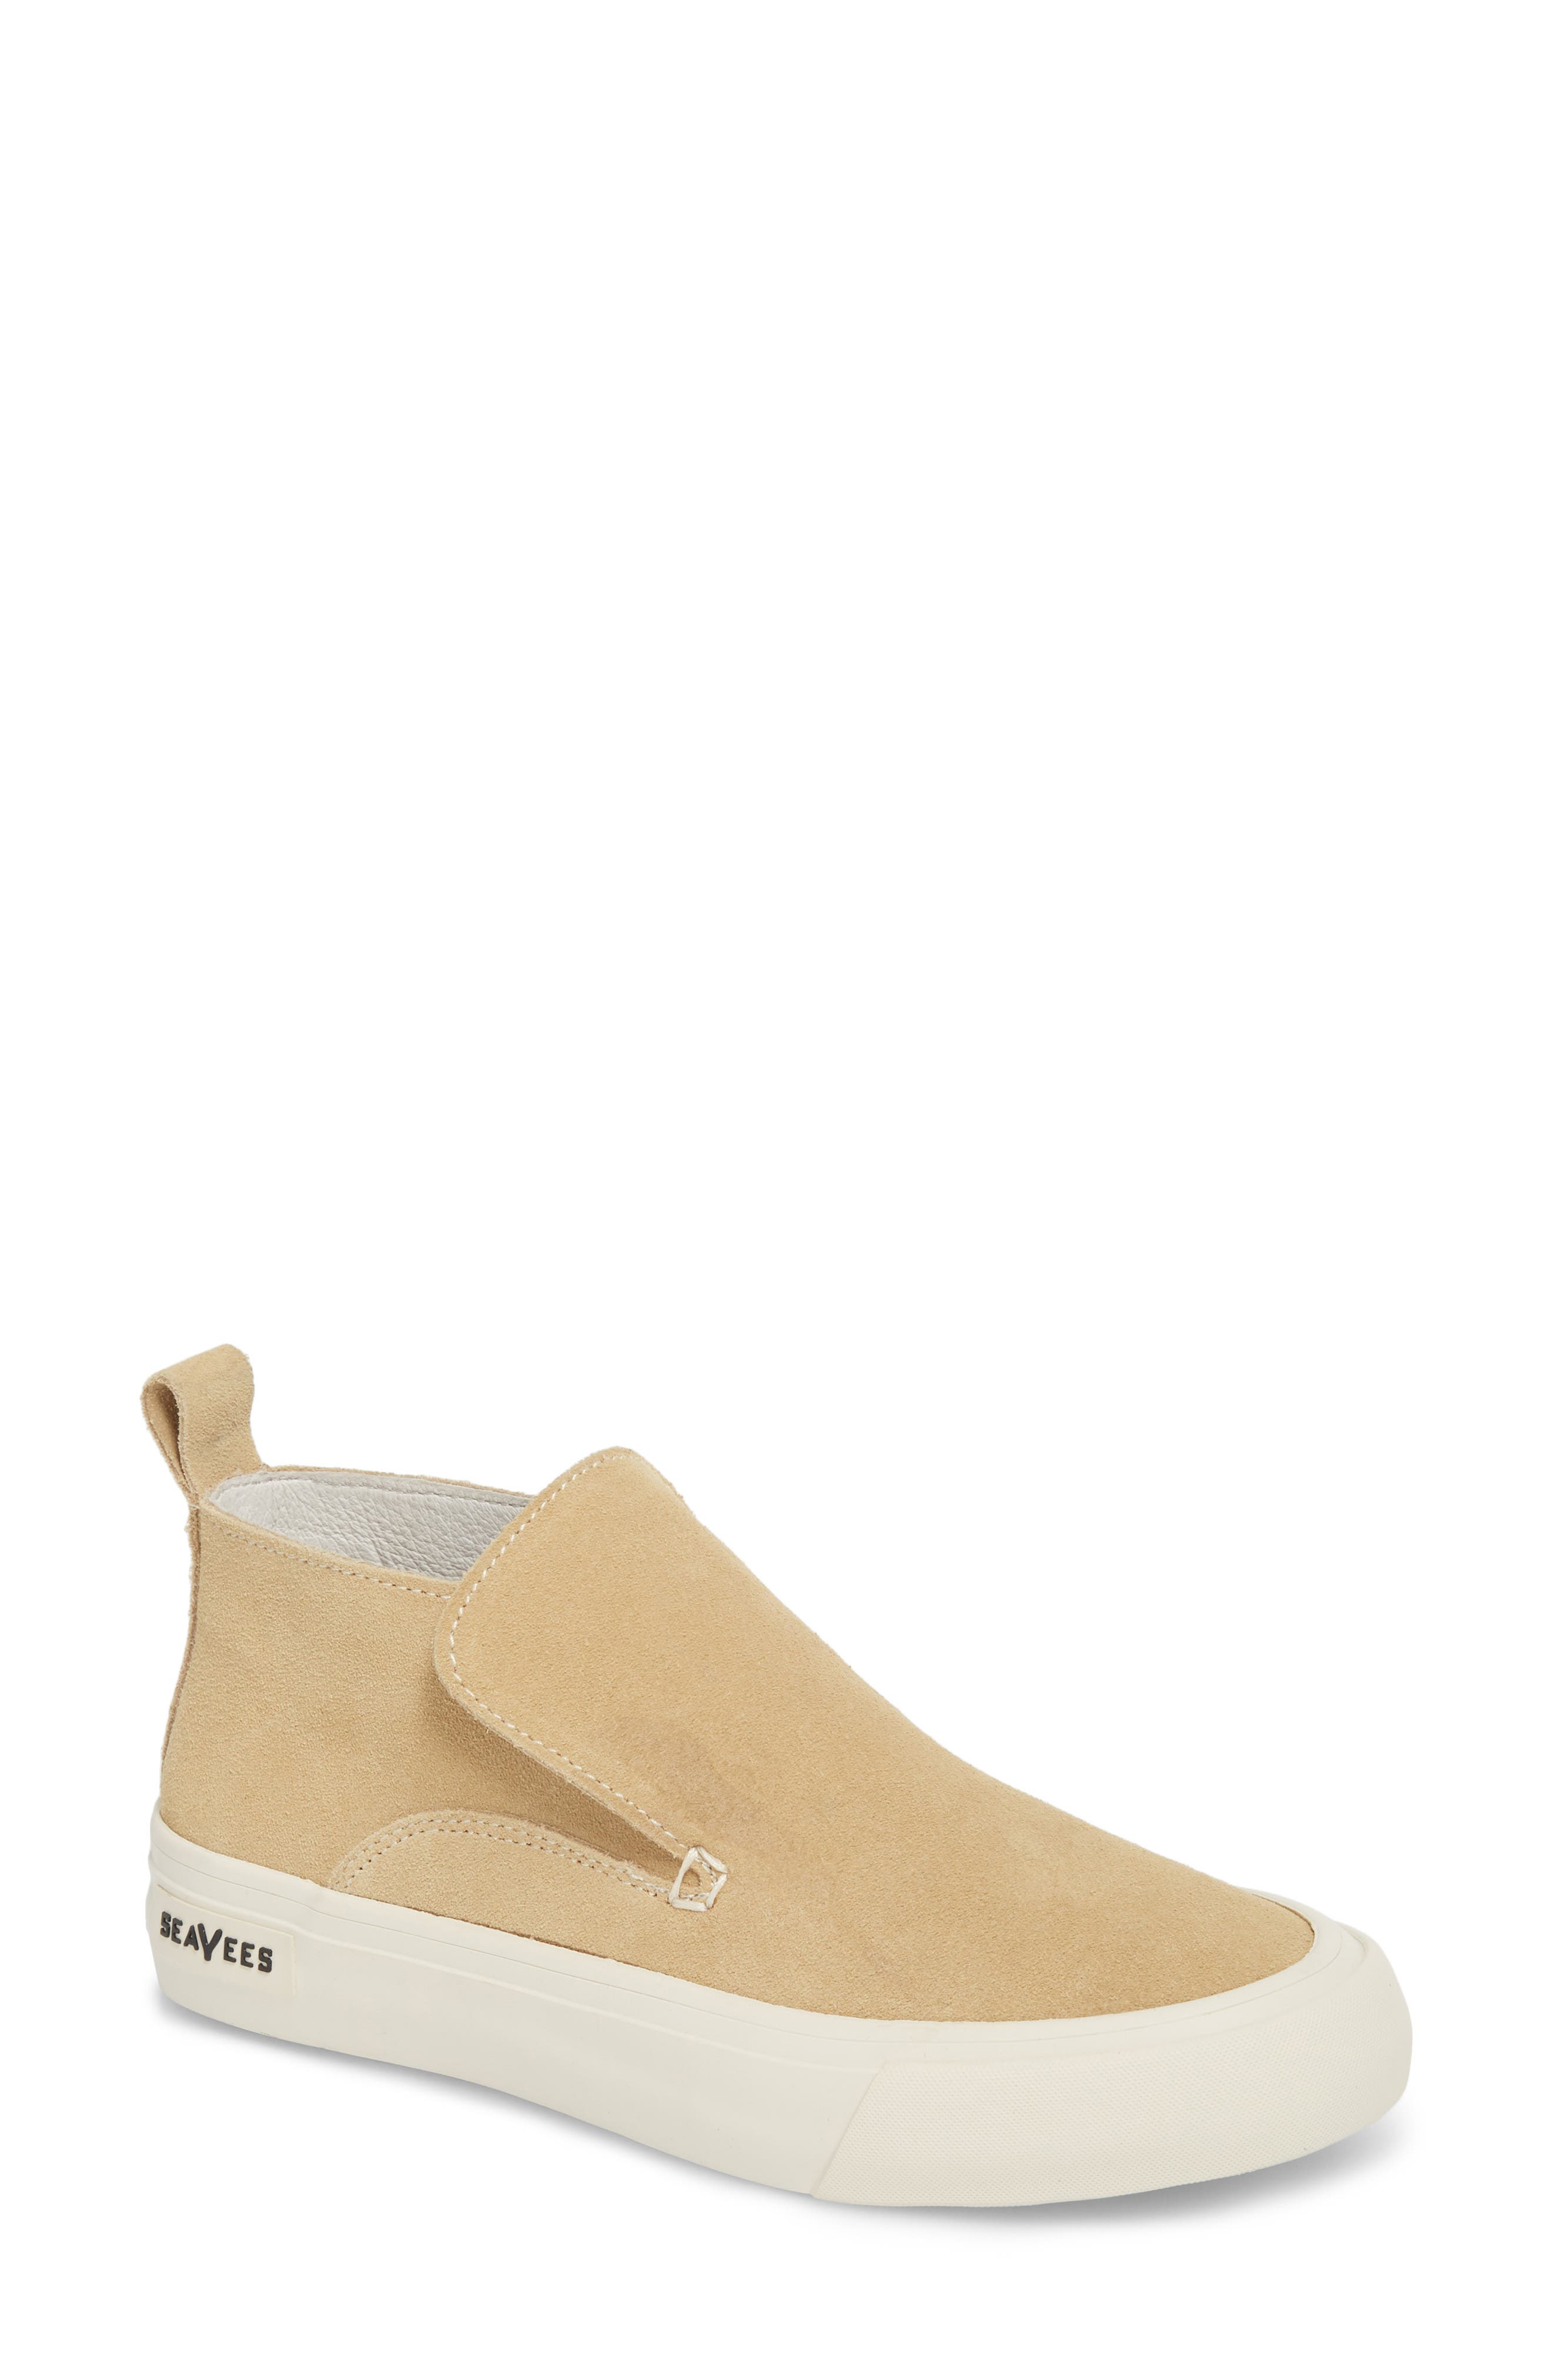 SeaVees x Derek Lam 10 Crosby Huntington Middie Slip-On Sneaker (Women)